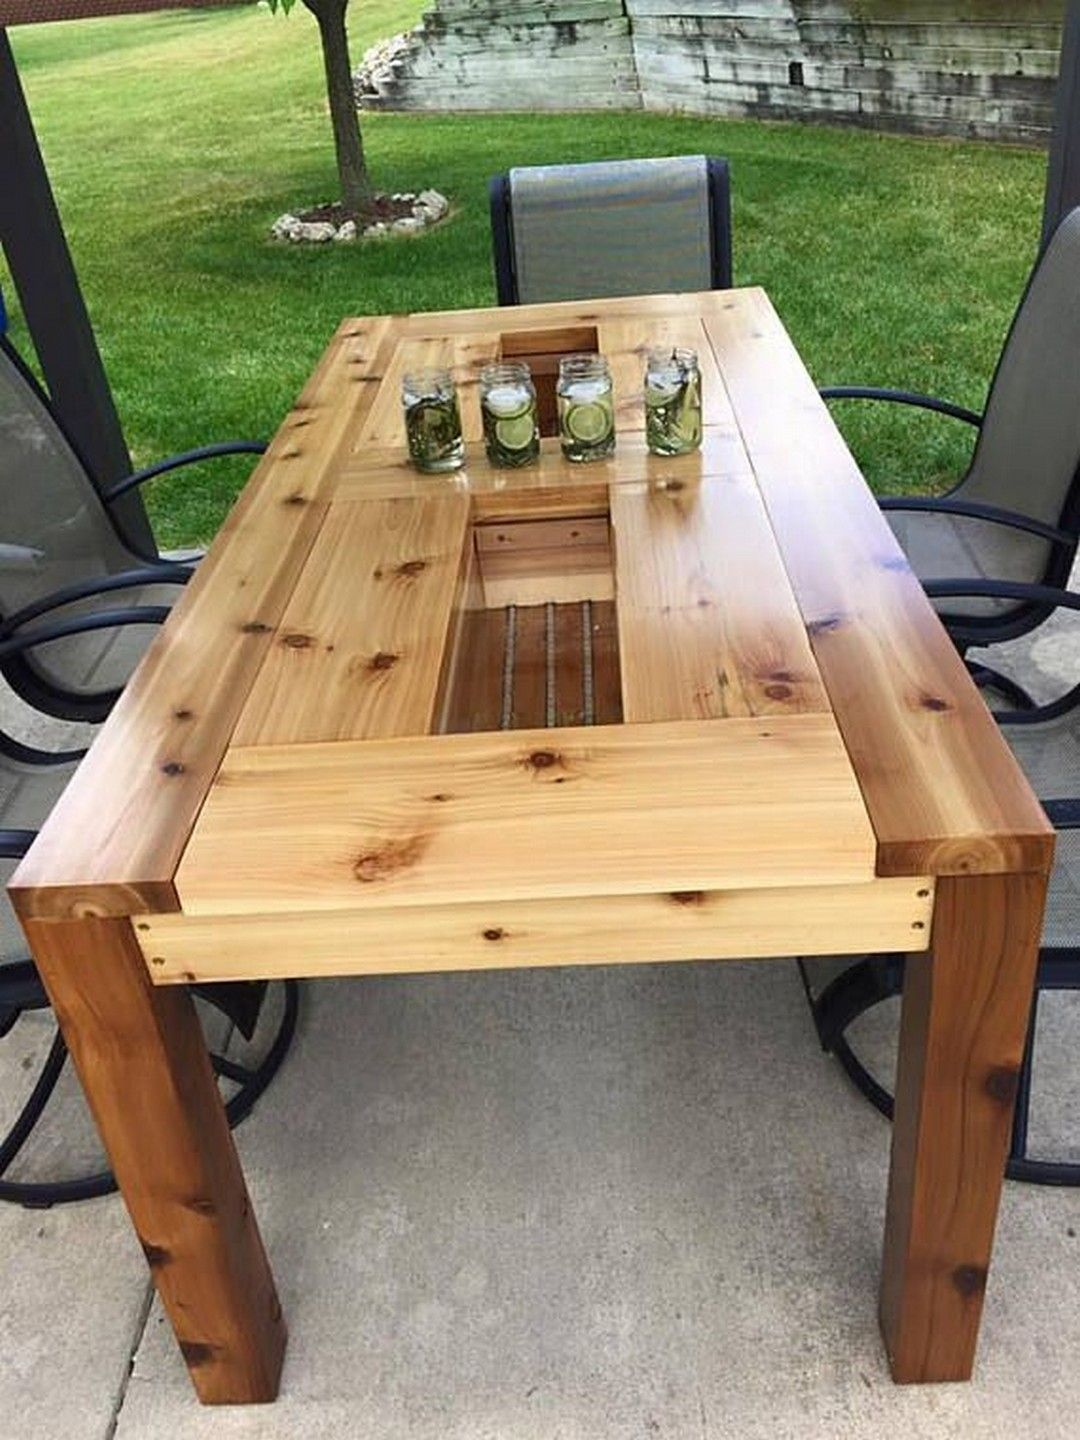 14 Diy Patio Table With Built In Drink Coolers Diy Patio Table Diy Outdoor Table Outdoor Furniture Plans [ 1440 x 1080 Pixel ]